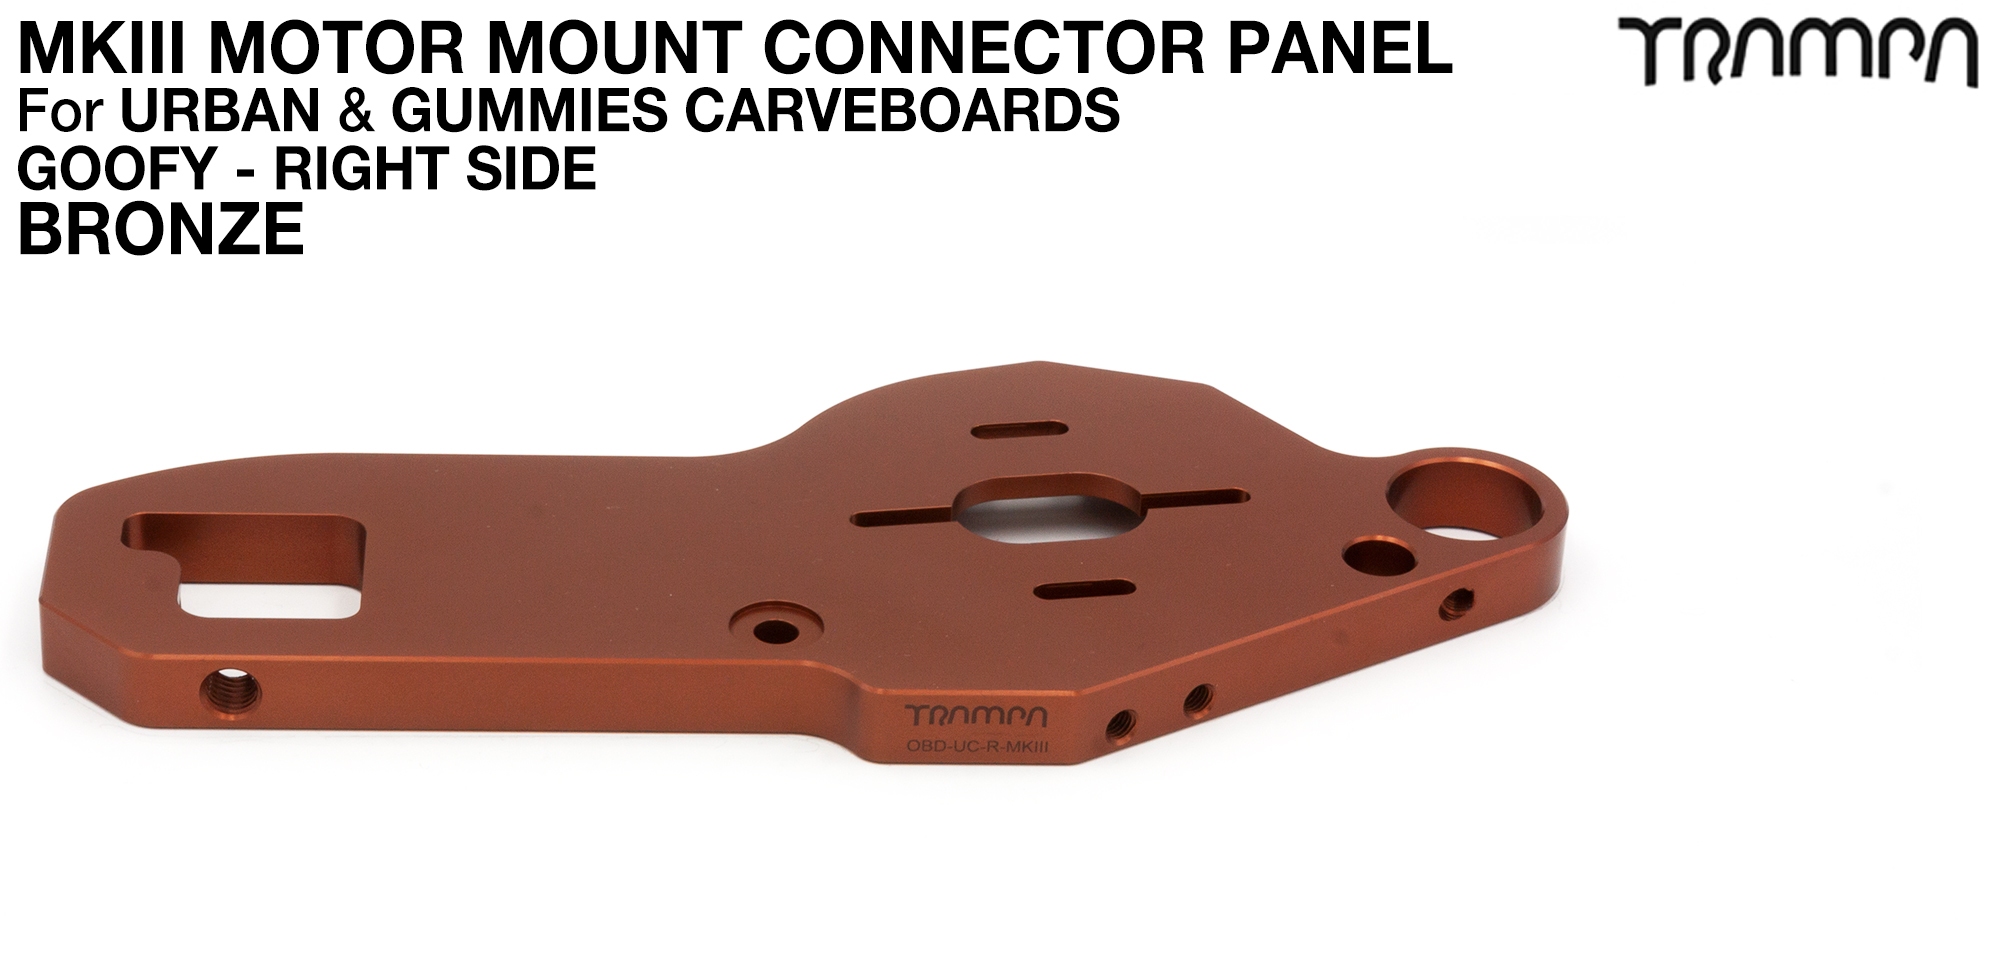 TWIN URBAN CARVE Motor Mount - BRONZE